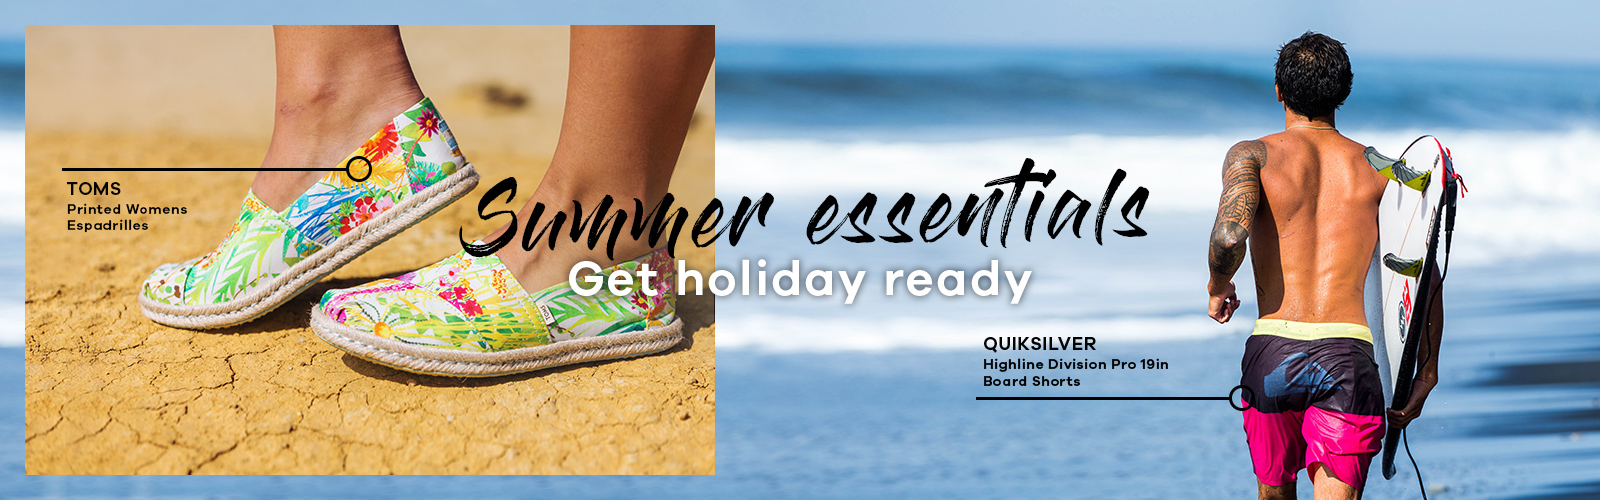 Get holiday ready | Shop your summer essentials